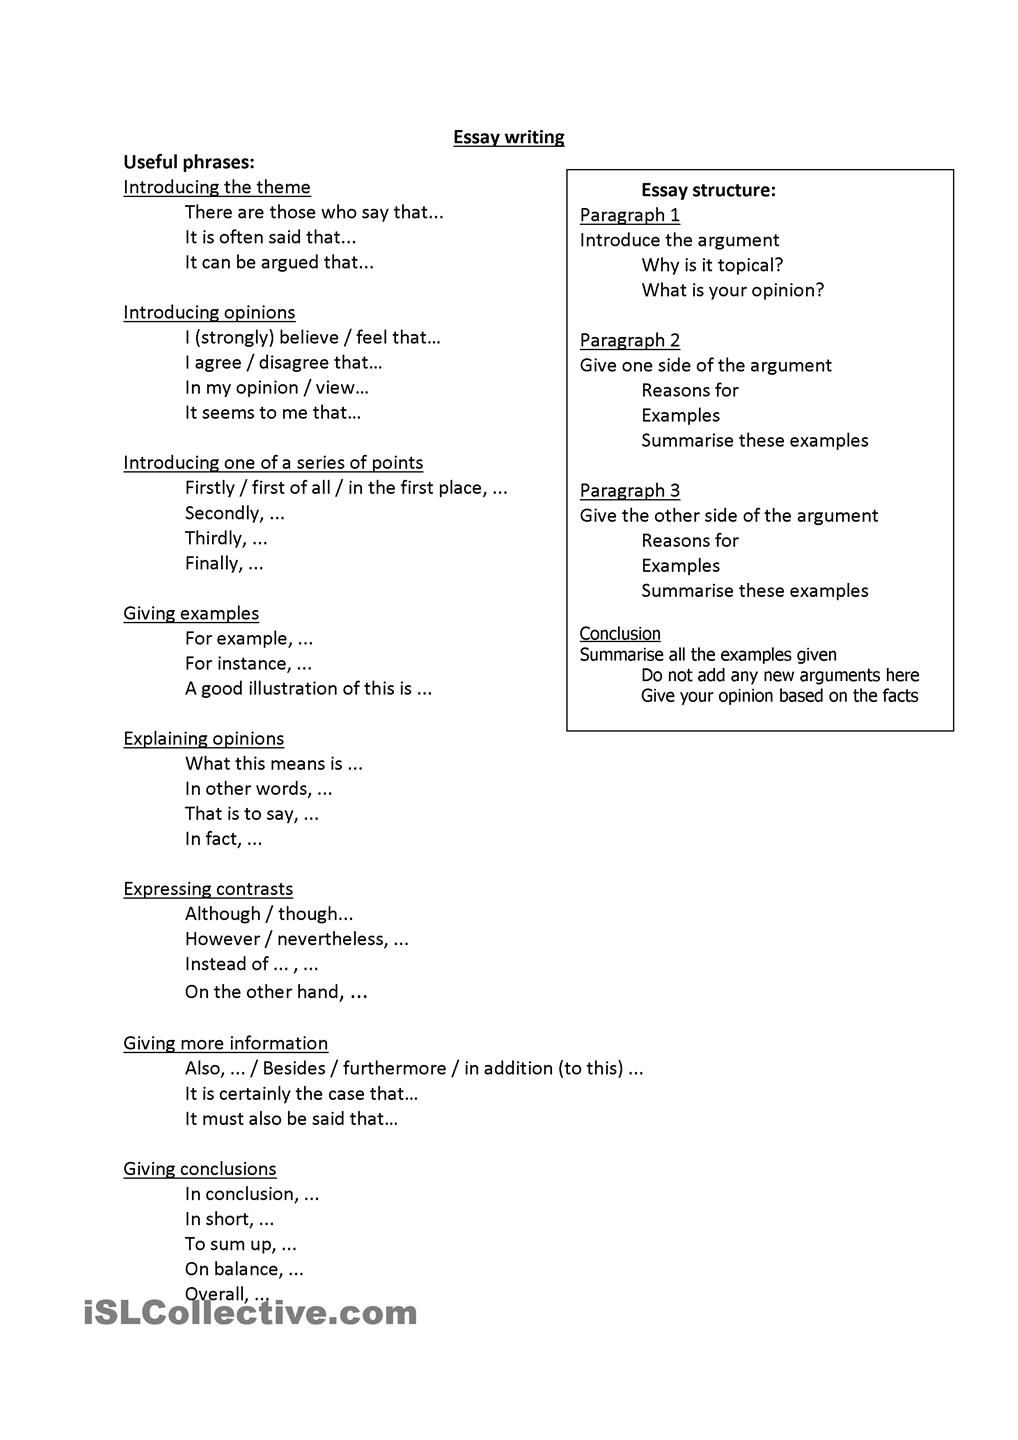 hight resolution of Useful phrases for Essay Writing   Essay writing